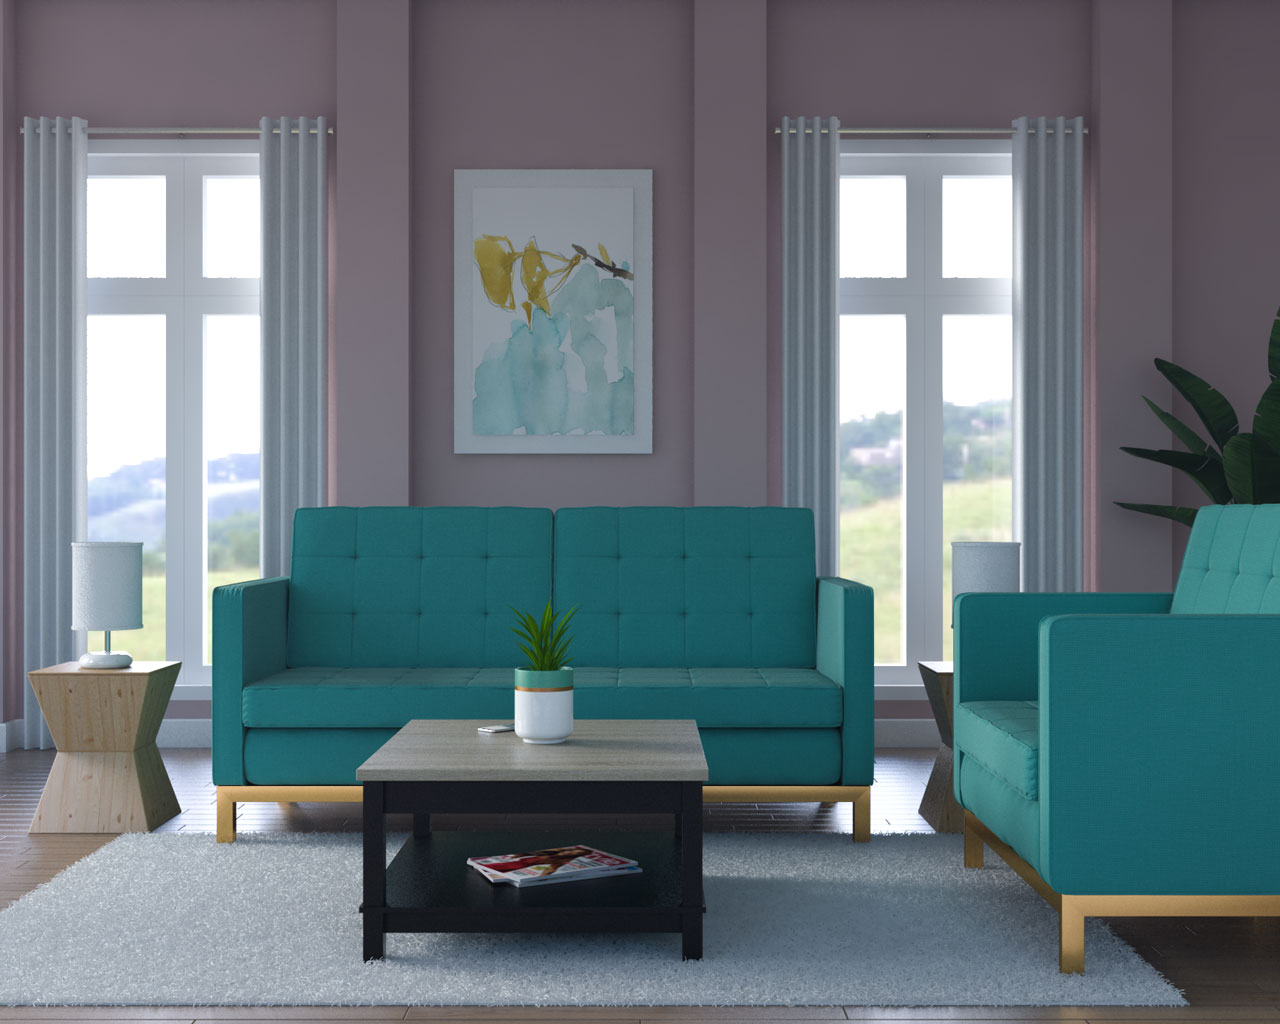 Dusty pink wall with teal couch